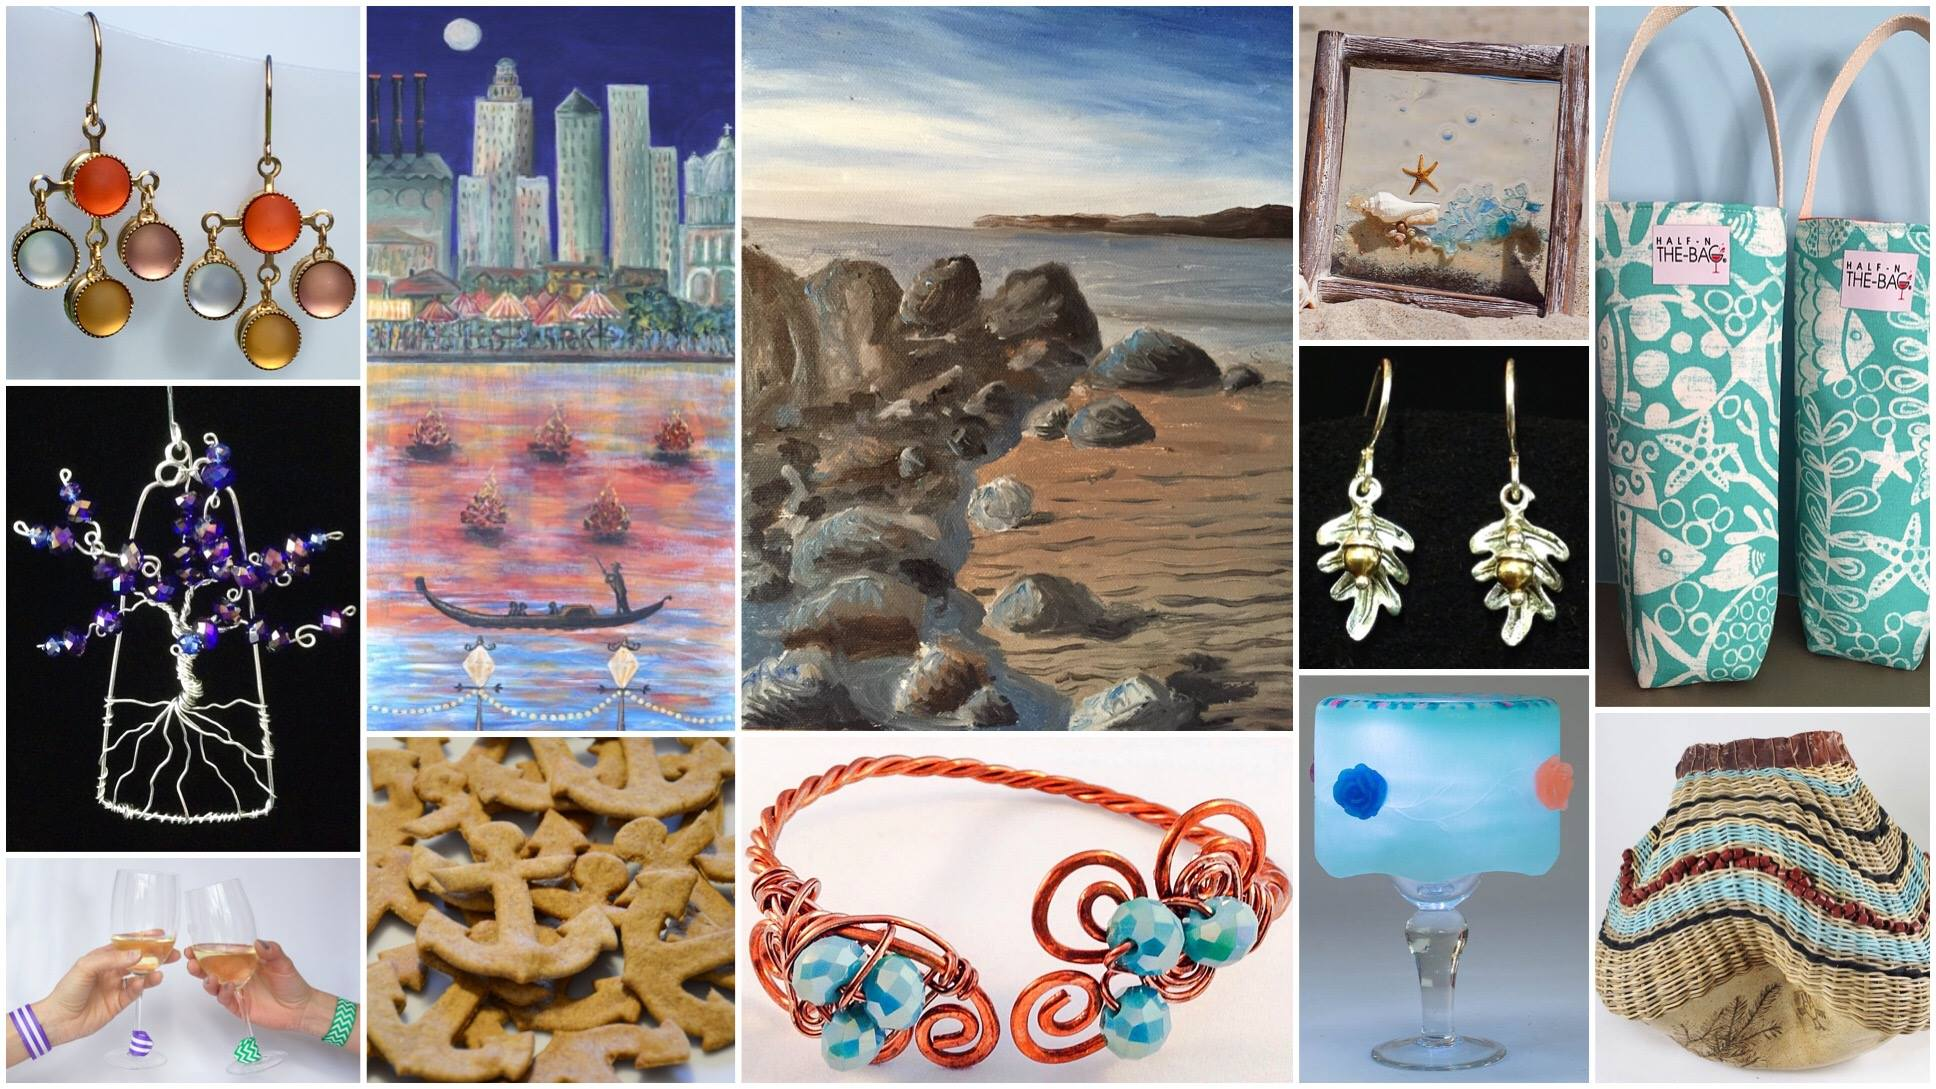 7th Annual Swampscott Arts And Craft Festival